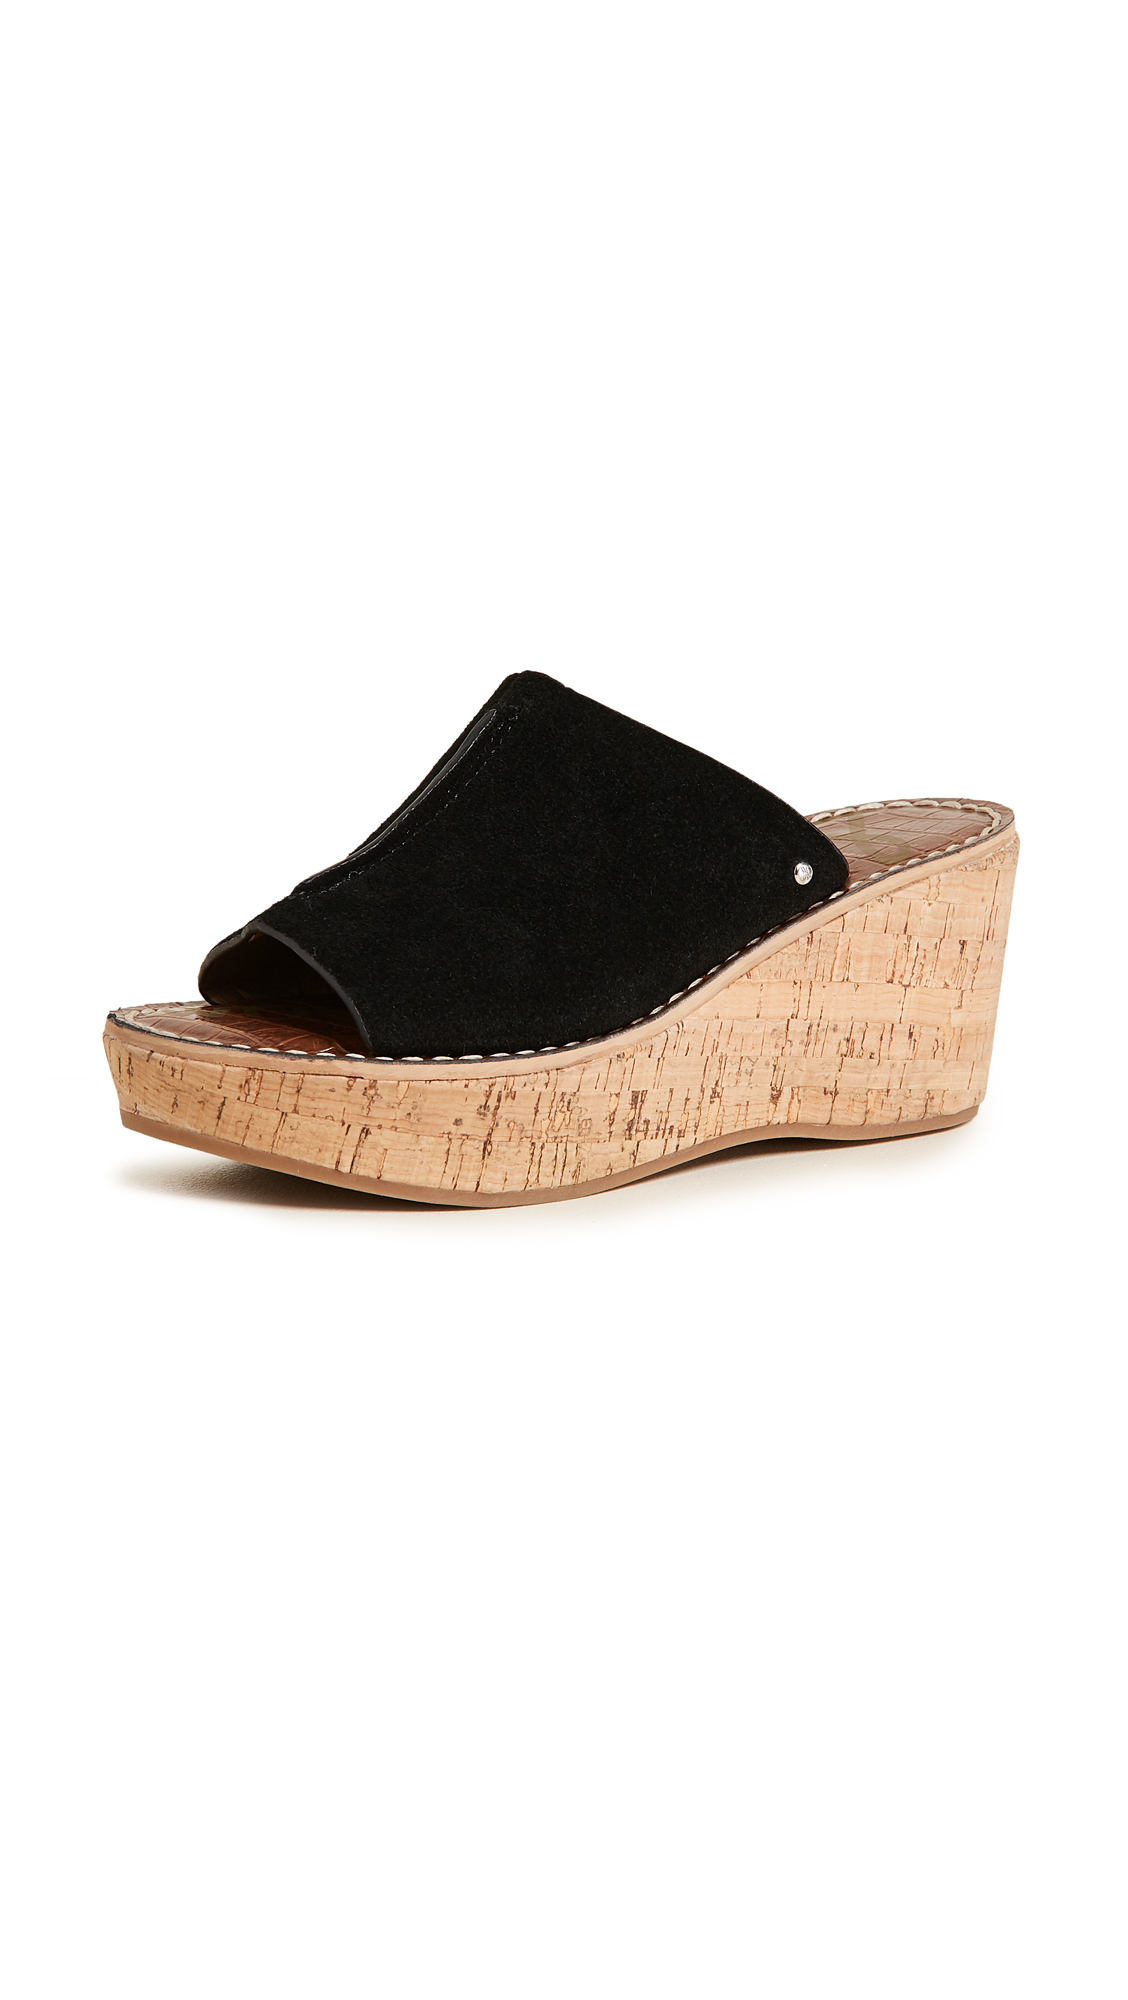 Sam Edelman Ranger Cork Wedge Mules - Black